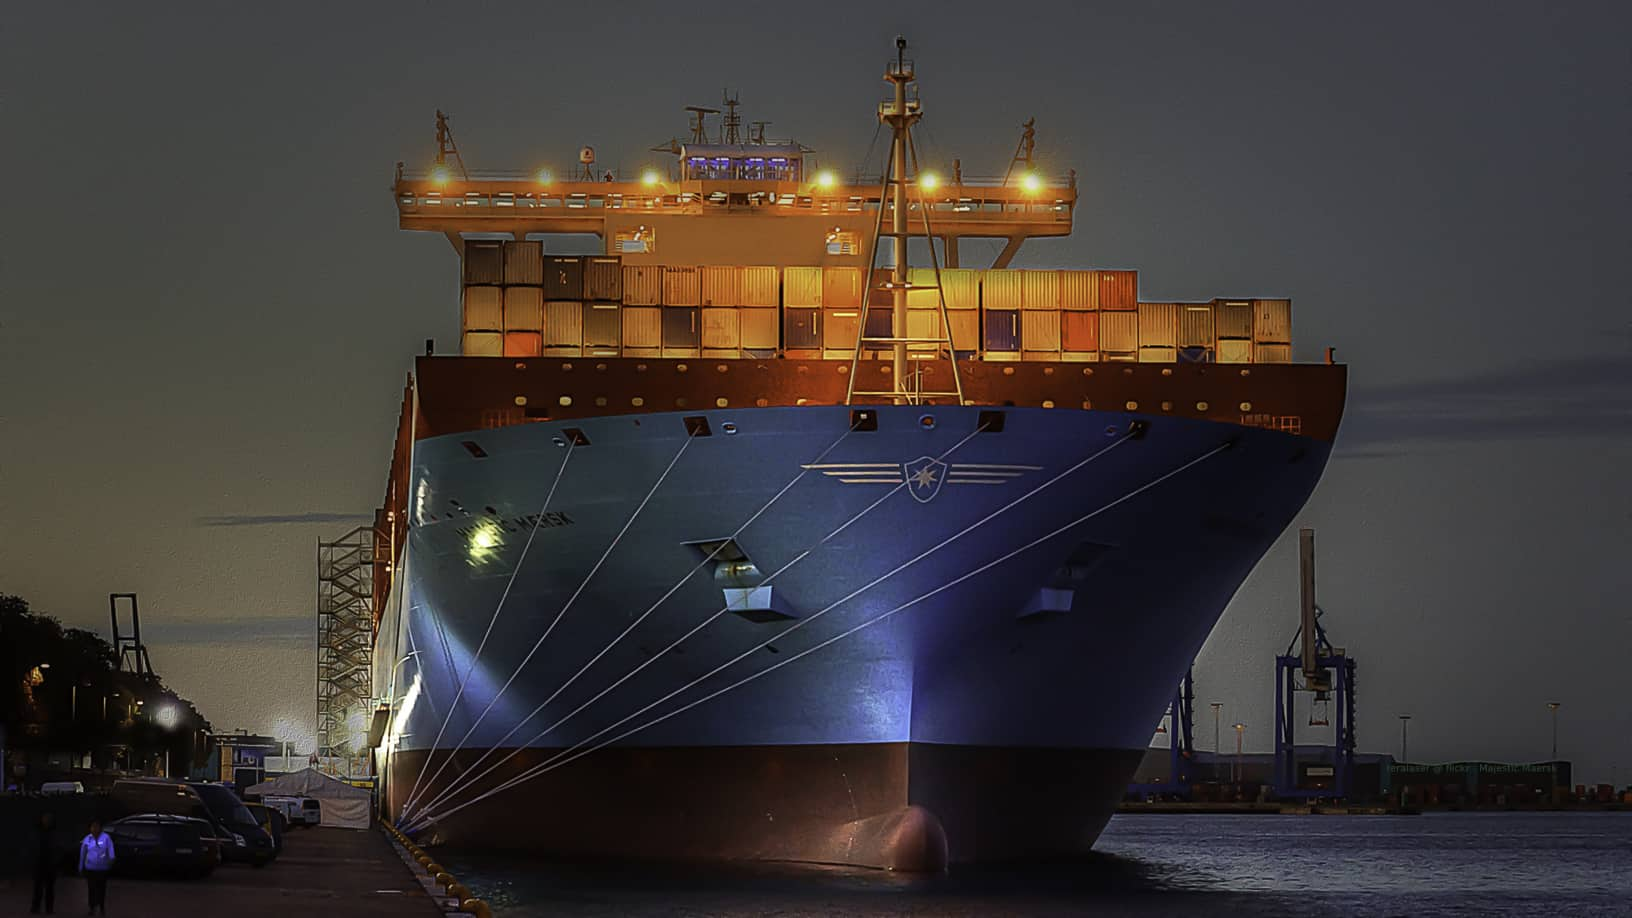 Why container liner profits remain elusive despite alliances